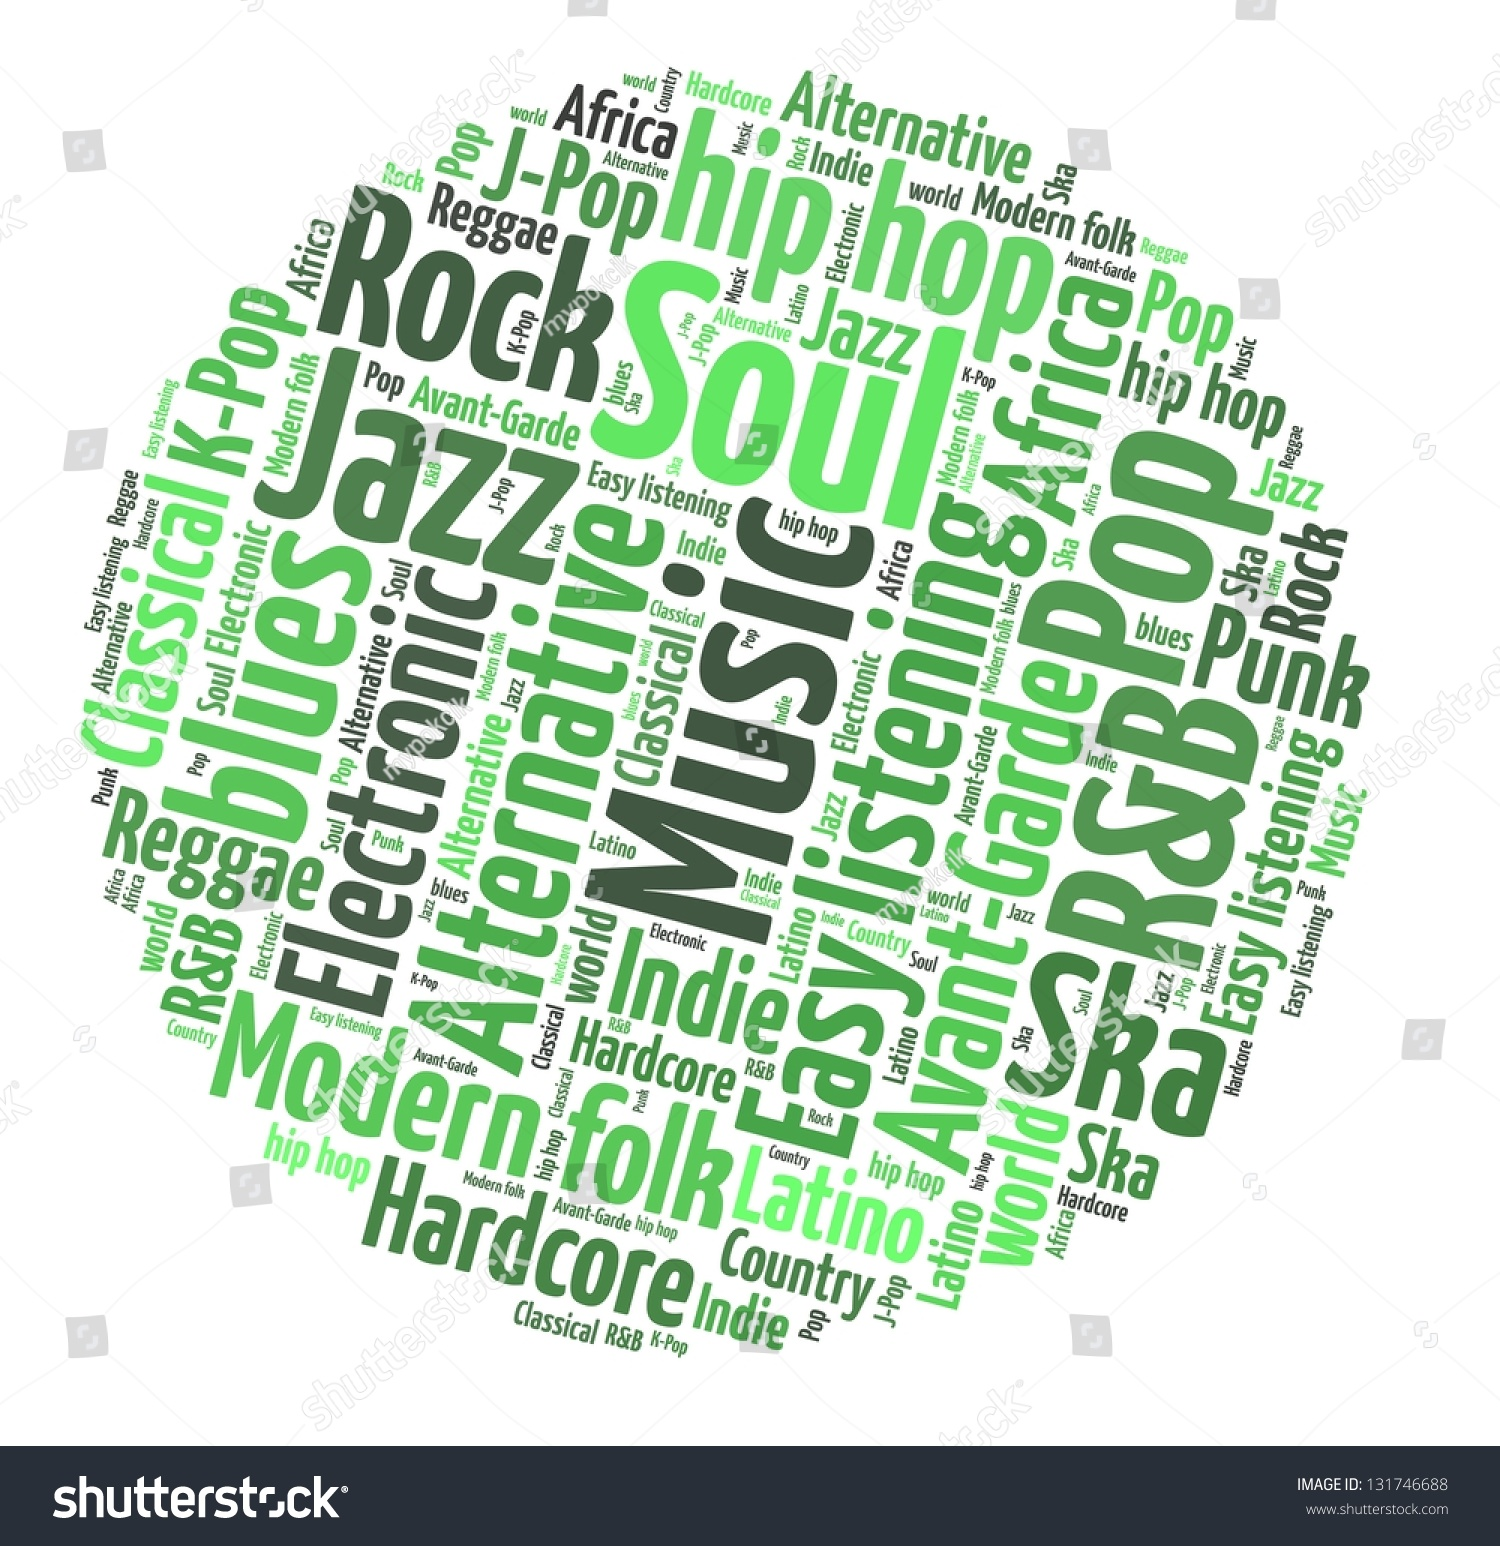 Genre: Music Genre In Word Collage Stock Photo 131746688